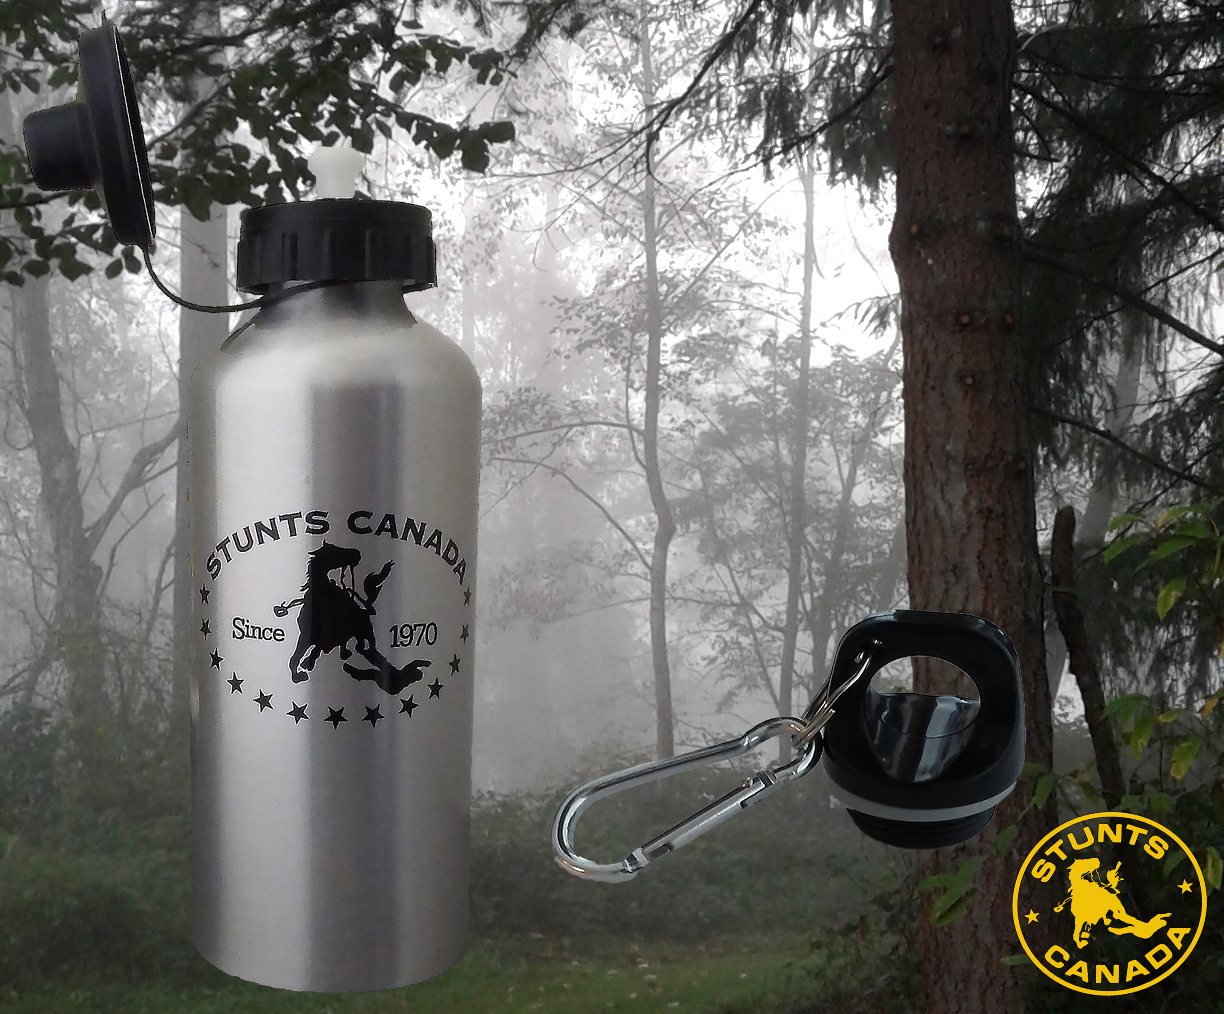 Stunts Canada Water Bottle – $15